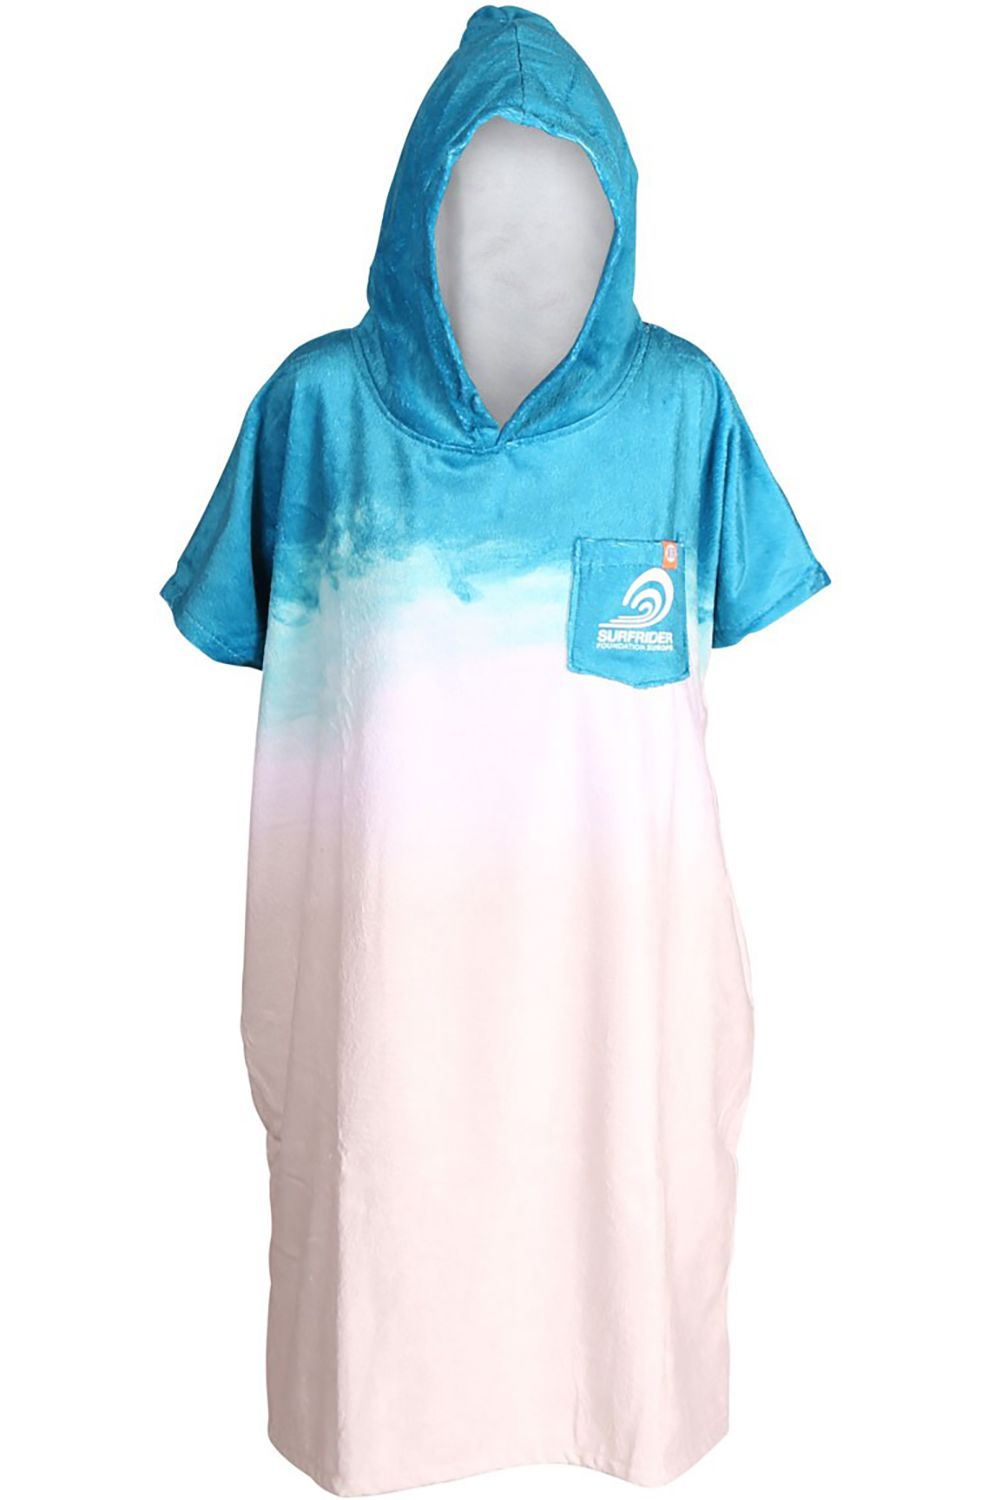 Poncho After SURF RIDER FOUNDATION Ocean